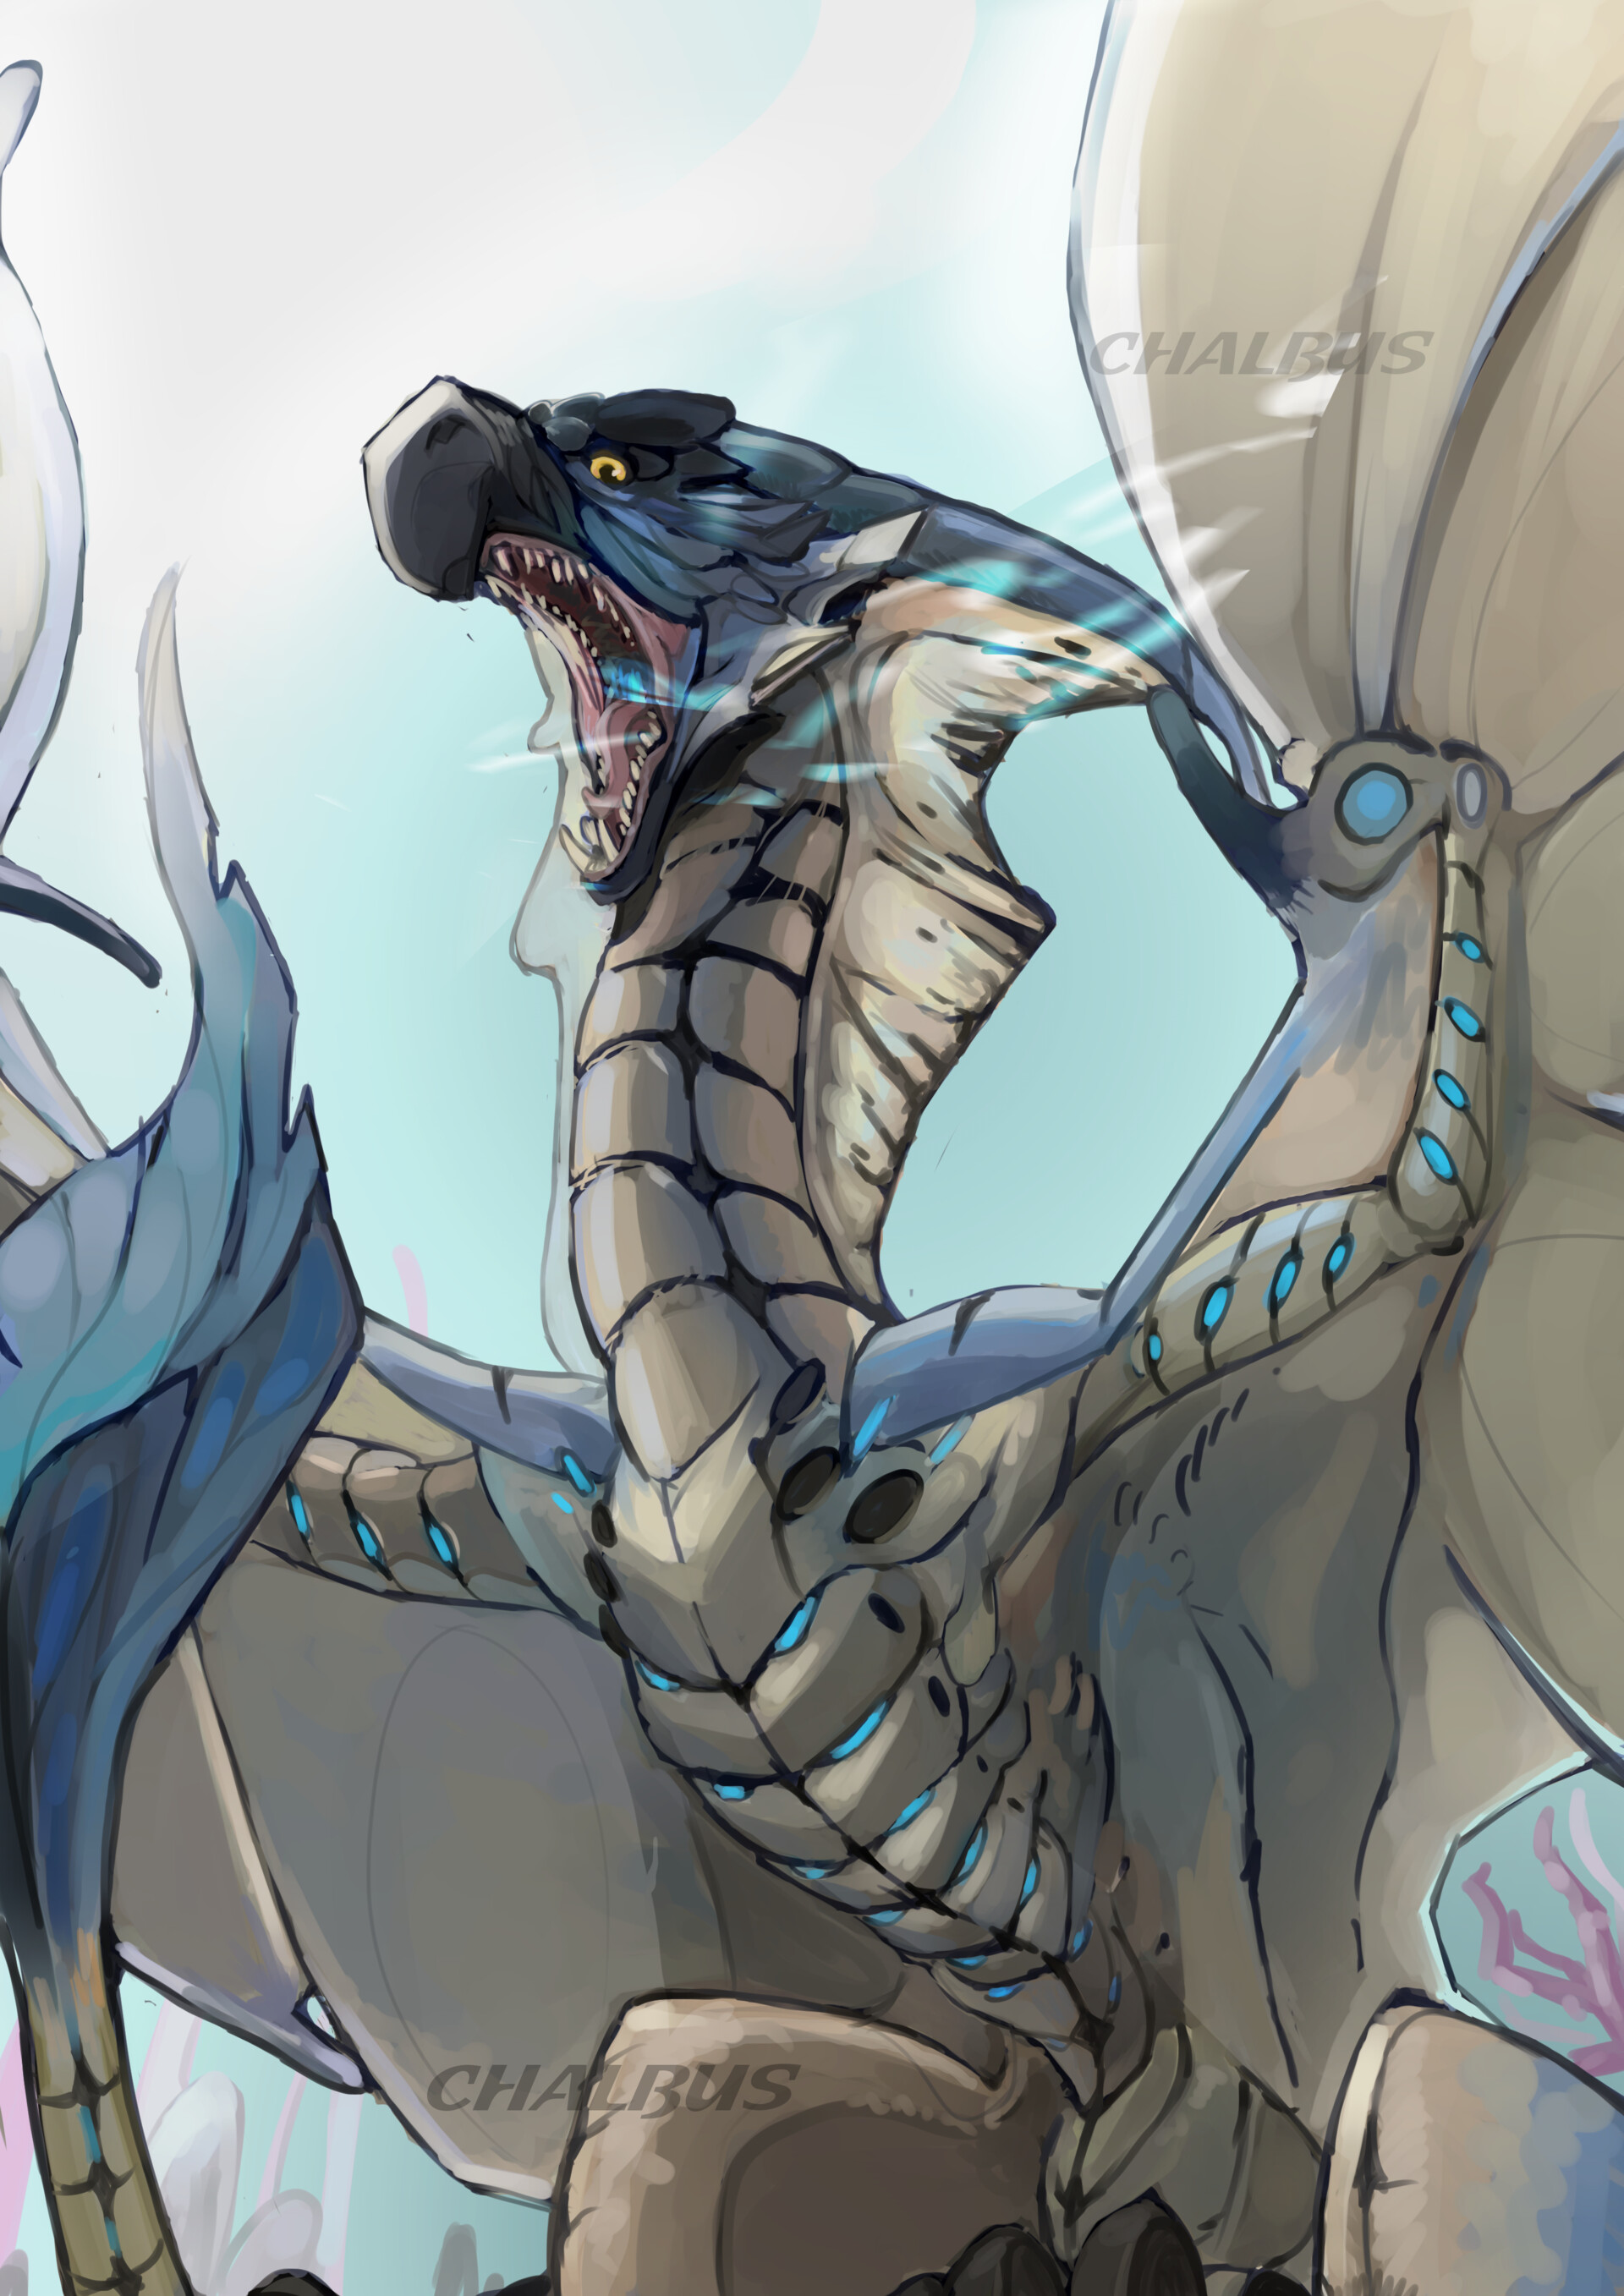 Artstation Ice King Legiana Chalbus